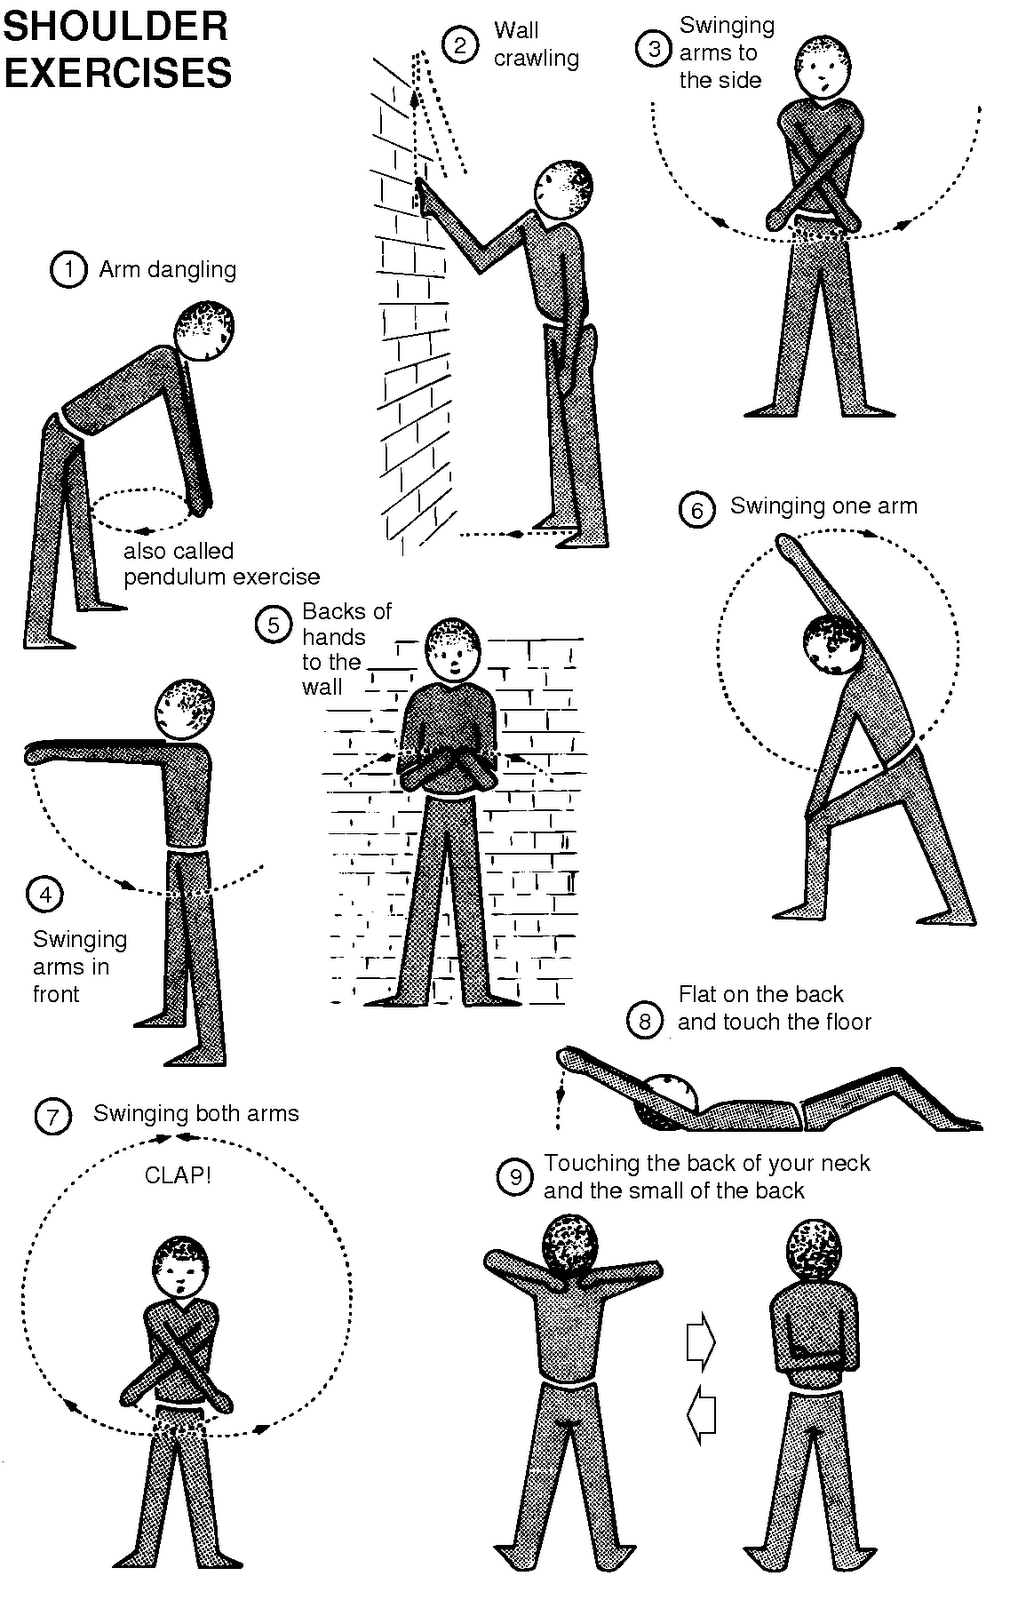 EXCLUSIVE PHYSIOTHERAPY GUIDE FOR PHYSIOTHERAPISTS: FREE ...